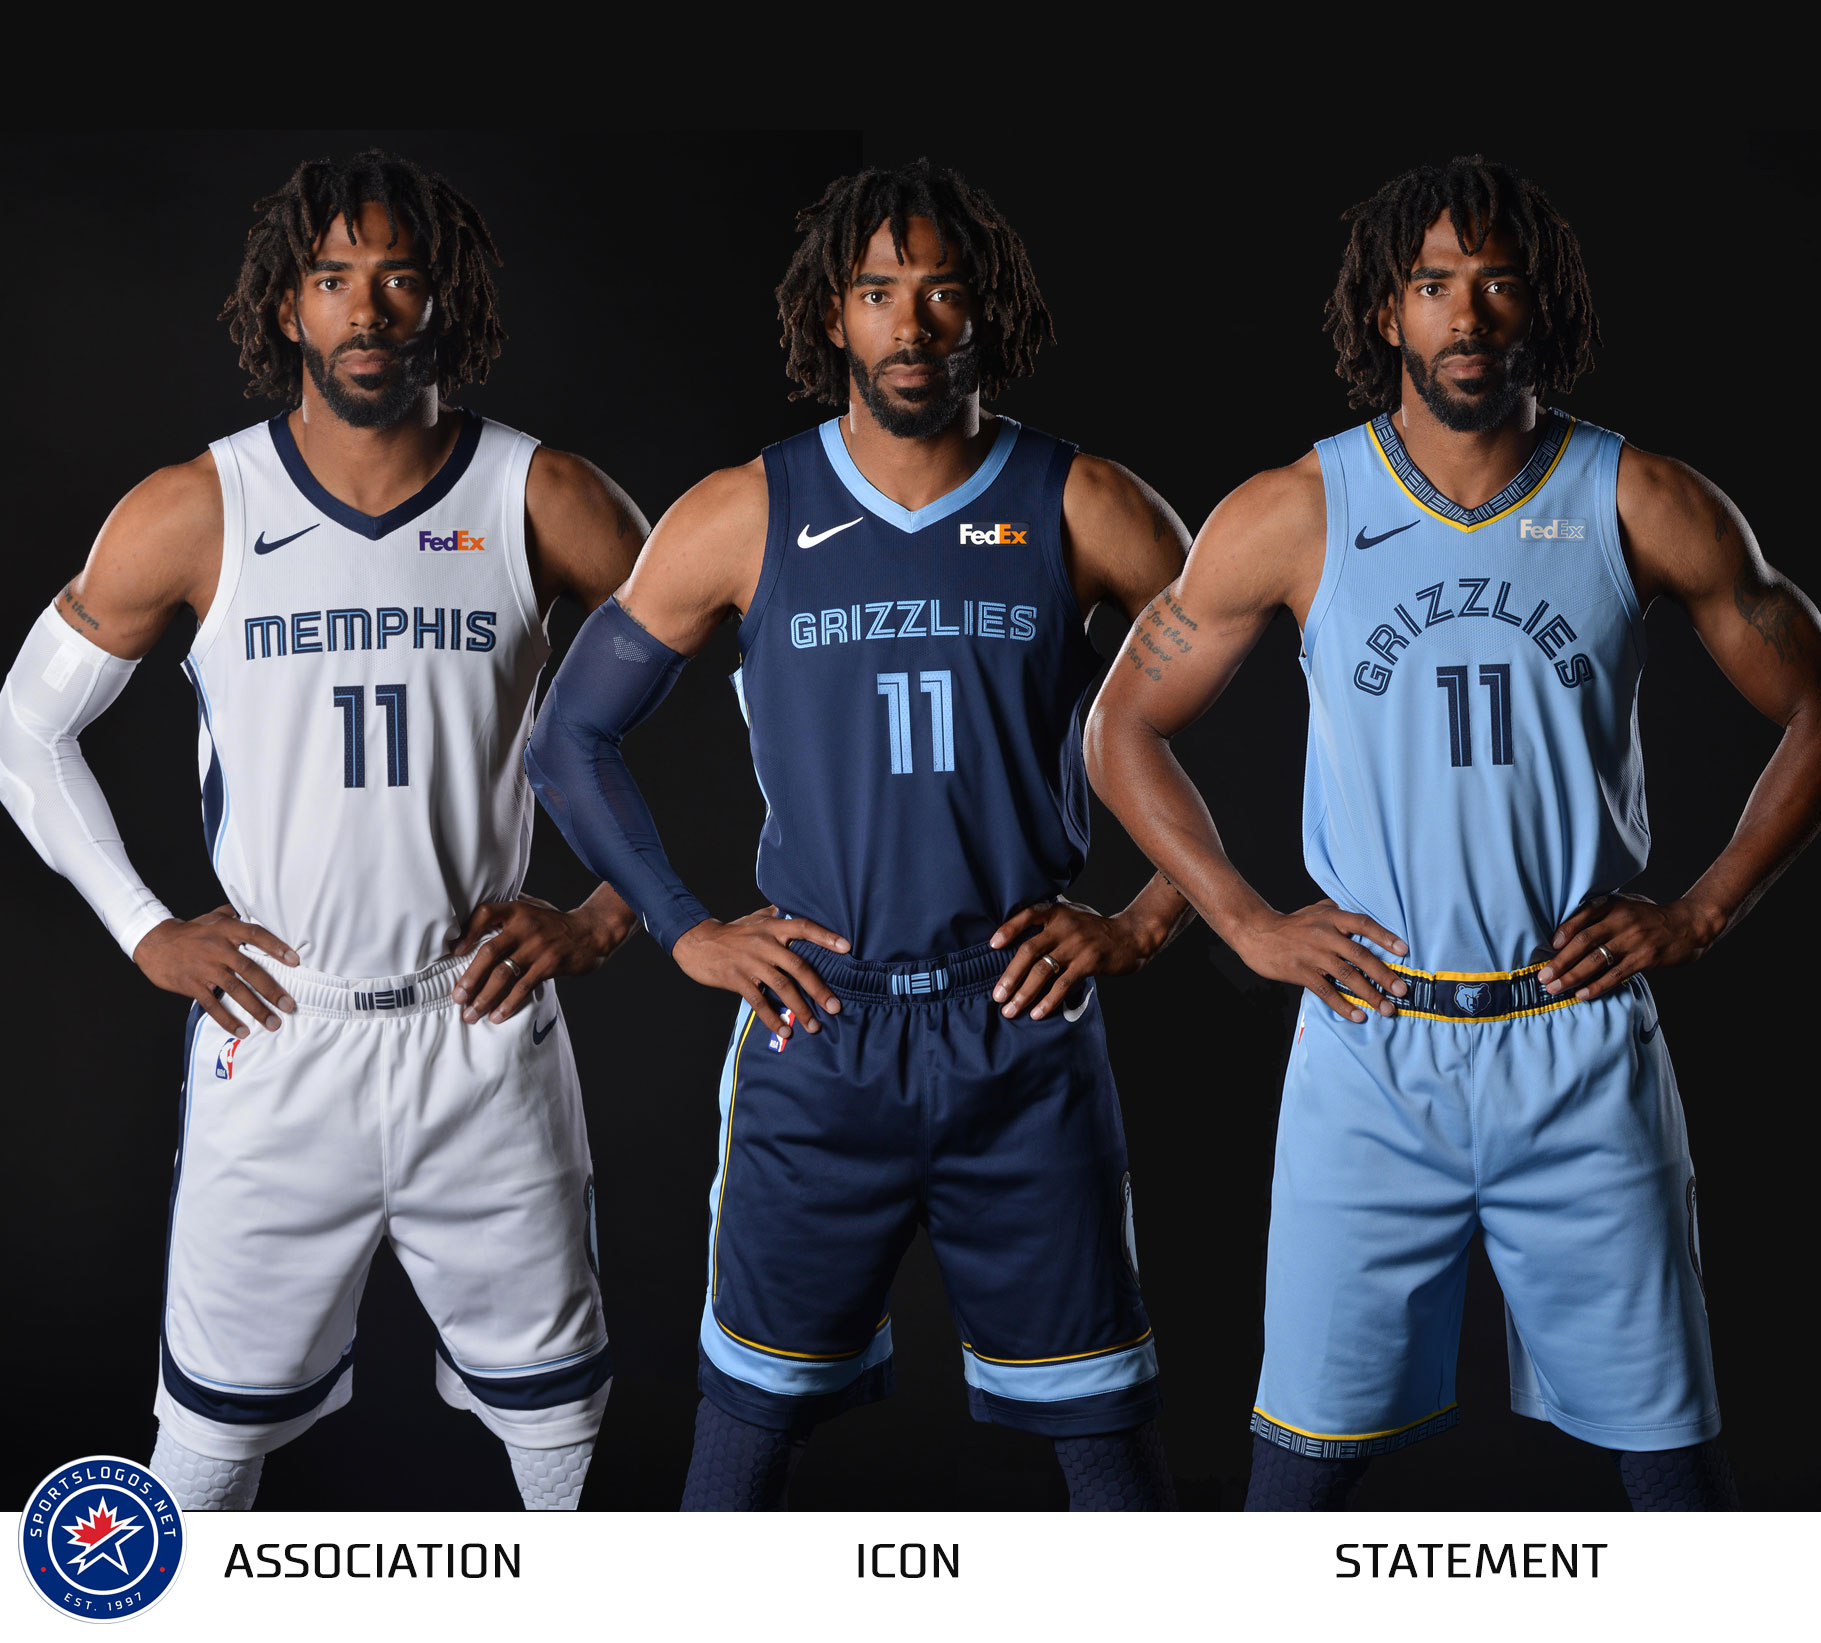 2018-19 New Memphis Grizzlies Uniforms NBA